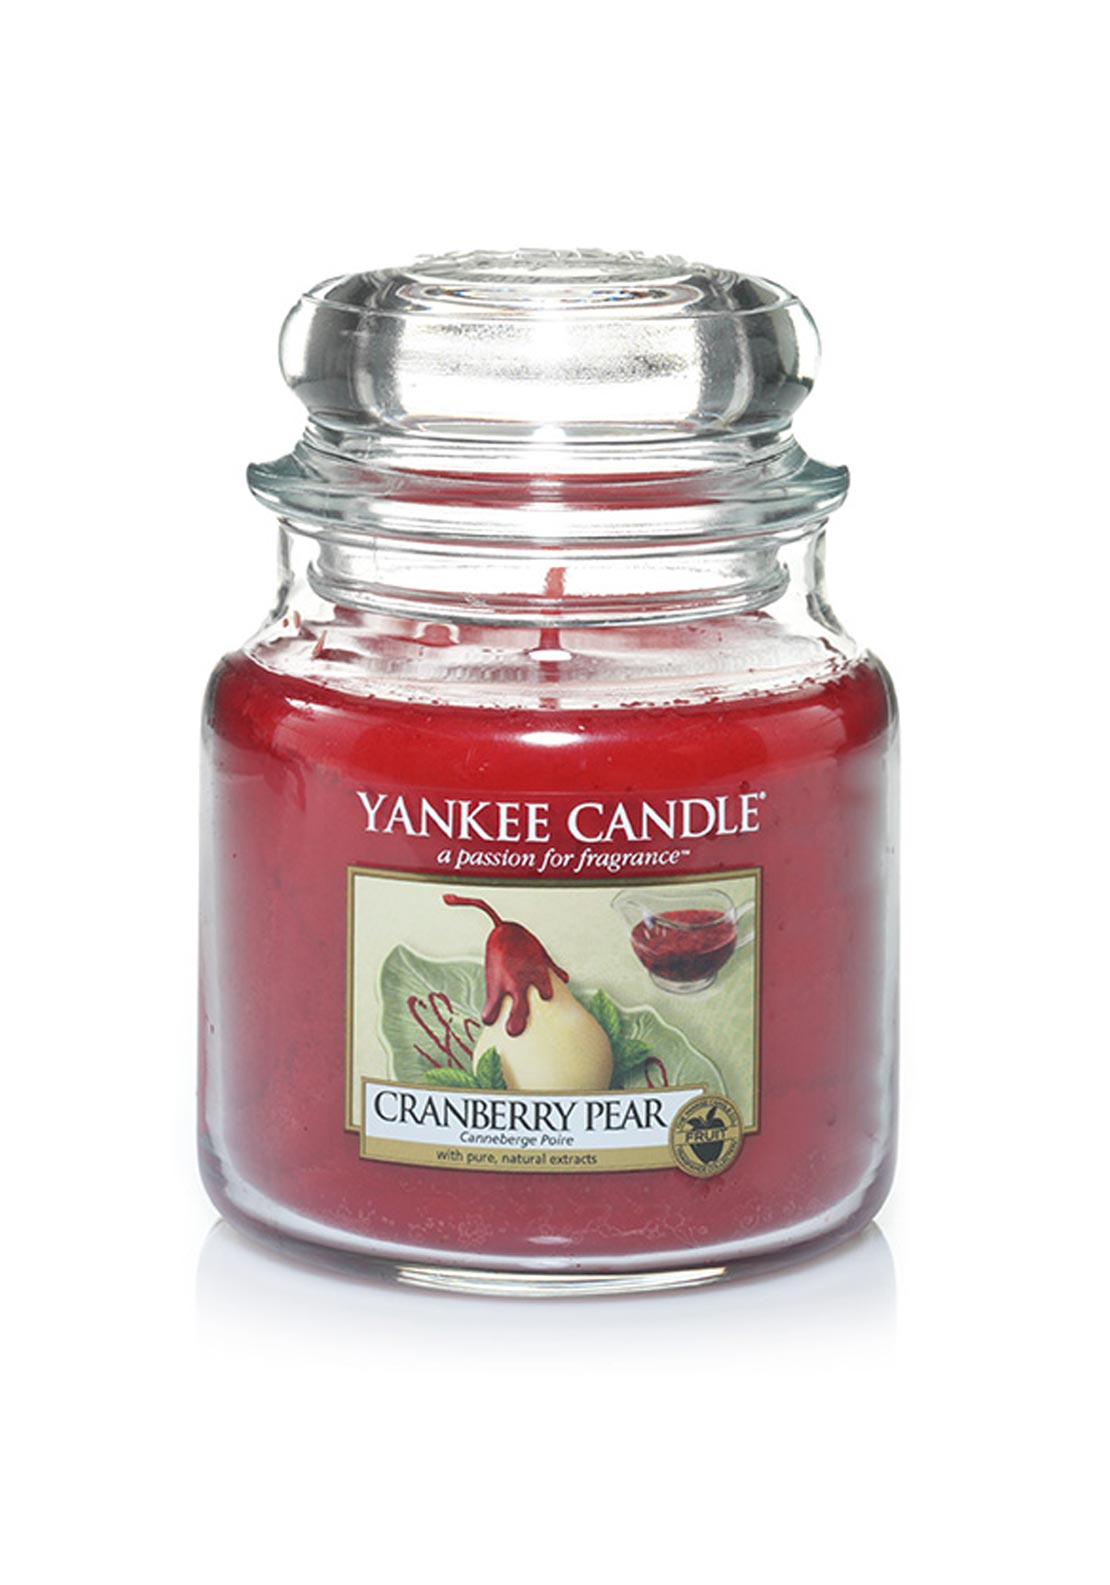 Yankee Candle Medium Classic Jar, Cranberry Pear